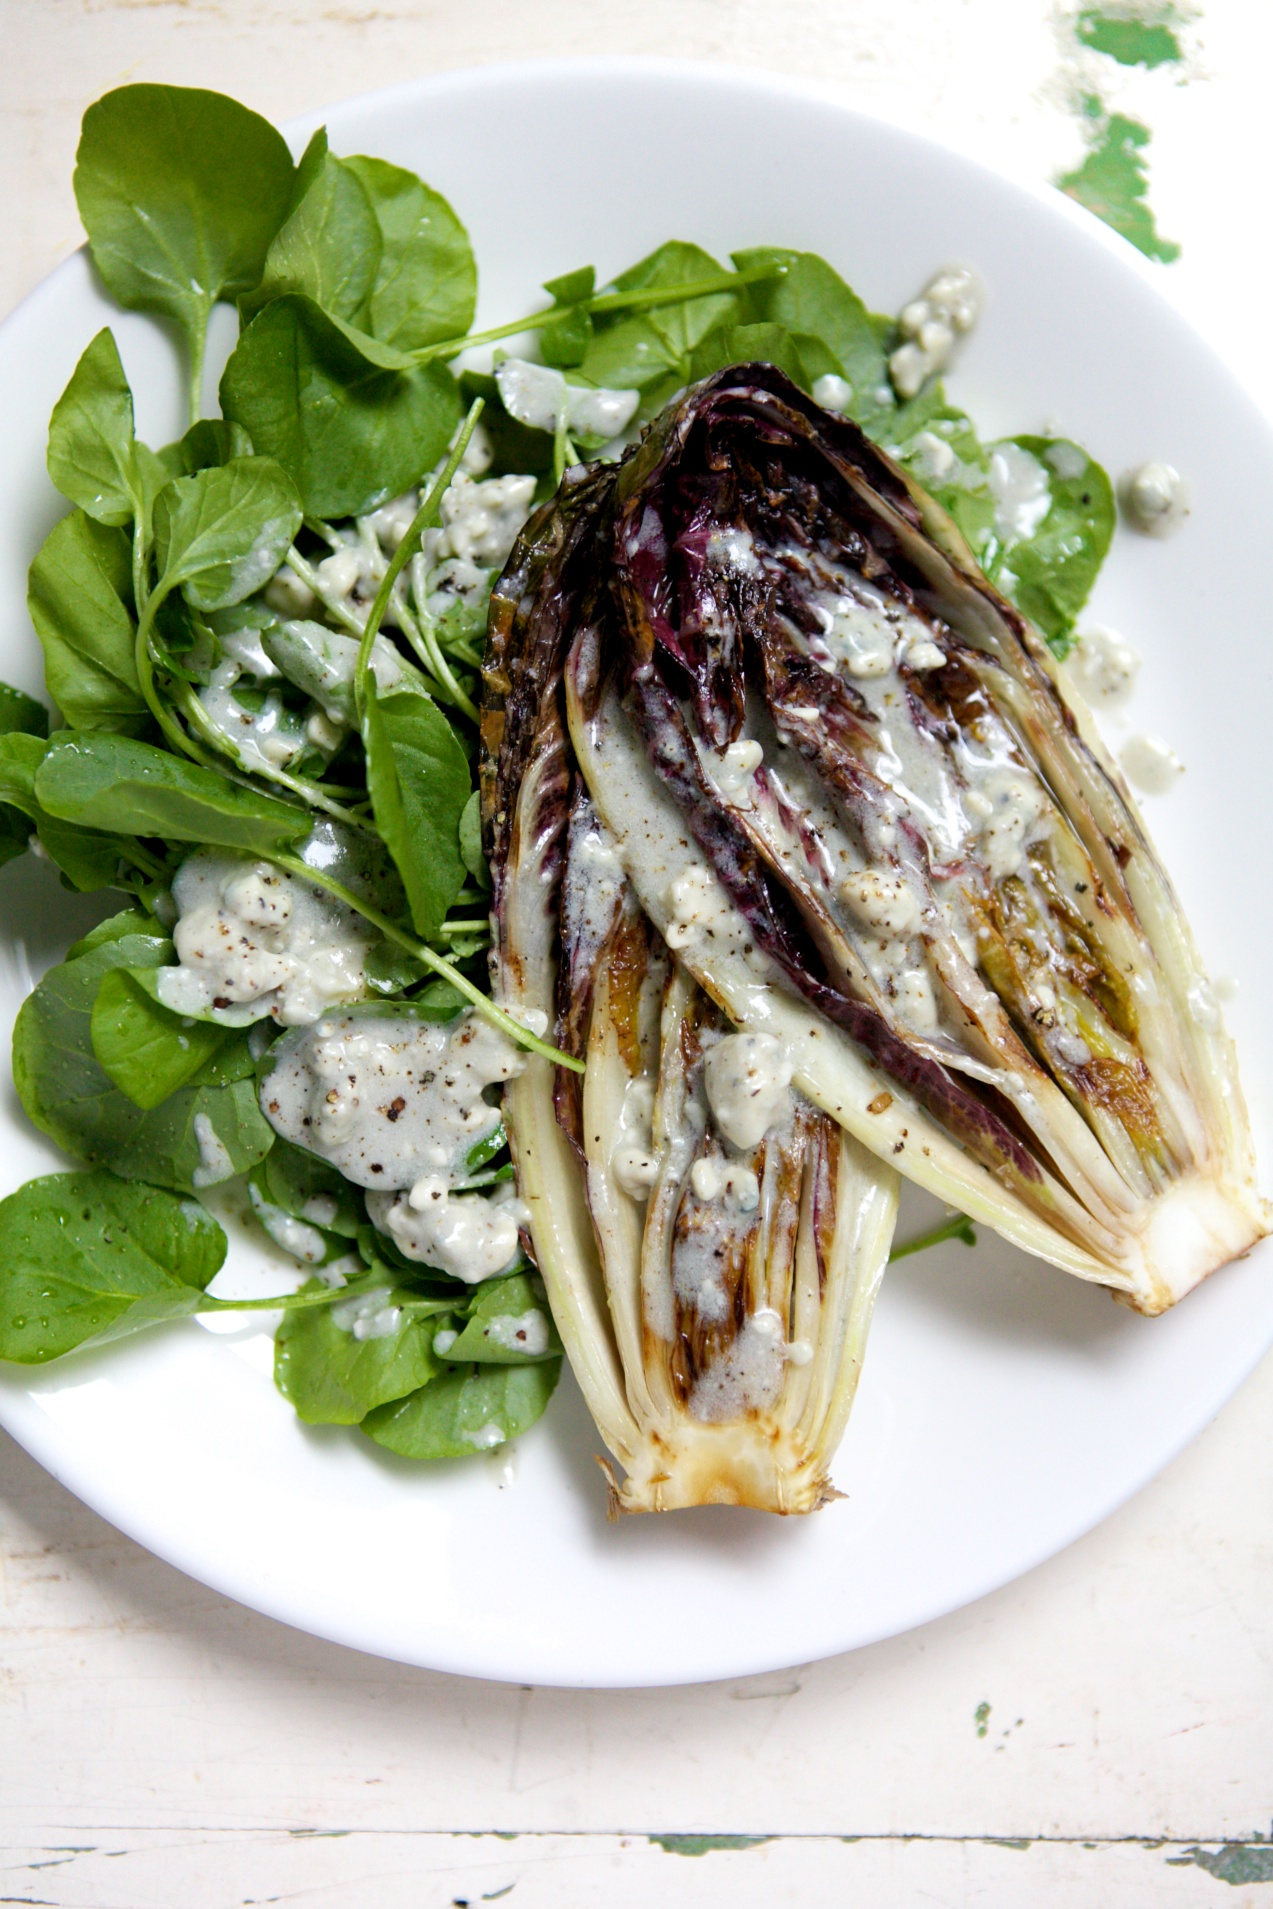 Grilled Treviso with Watercress & Creamy Blue Cheese